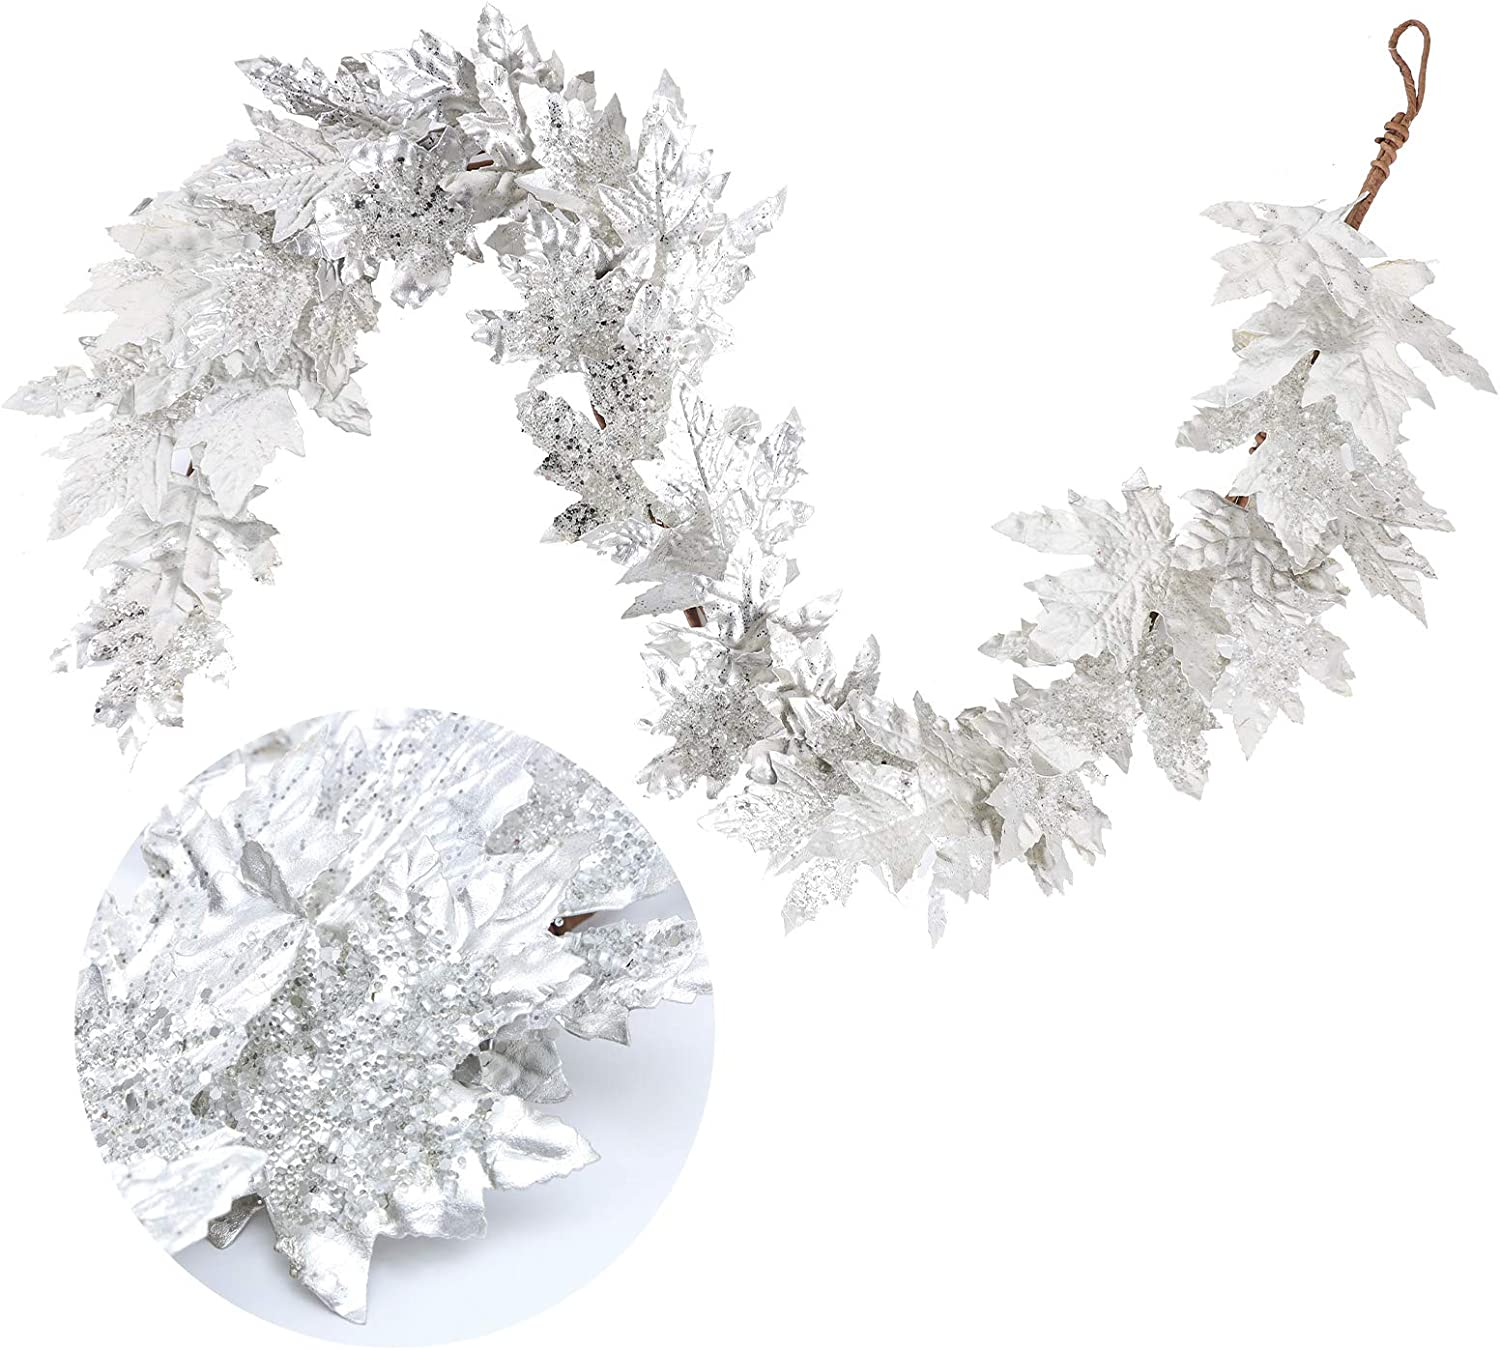 Frdsomar 4.8ft Christmas Garland, Artificial Christmas Tree Decoration with Silver Leaves for Front Door, Flocked Winter Garland for Indoor, Outdoor Decor, Home, Fireplace Decoration